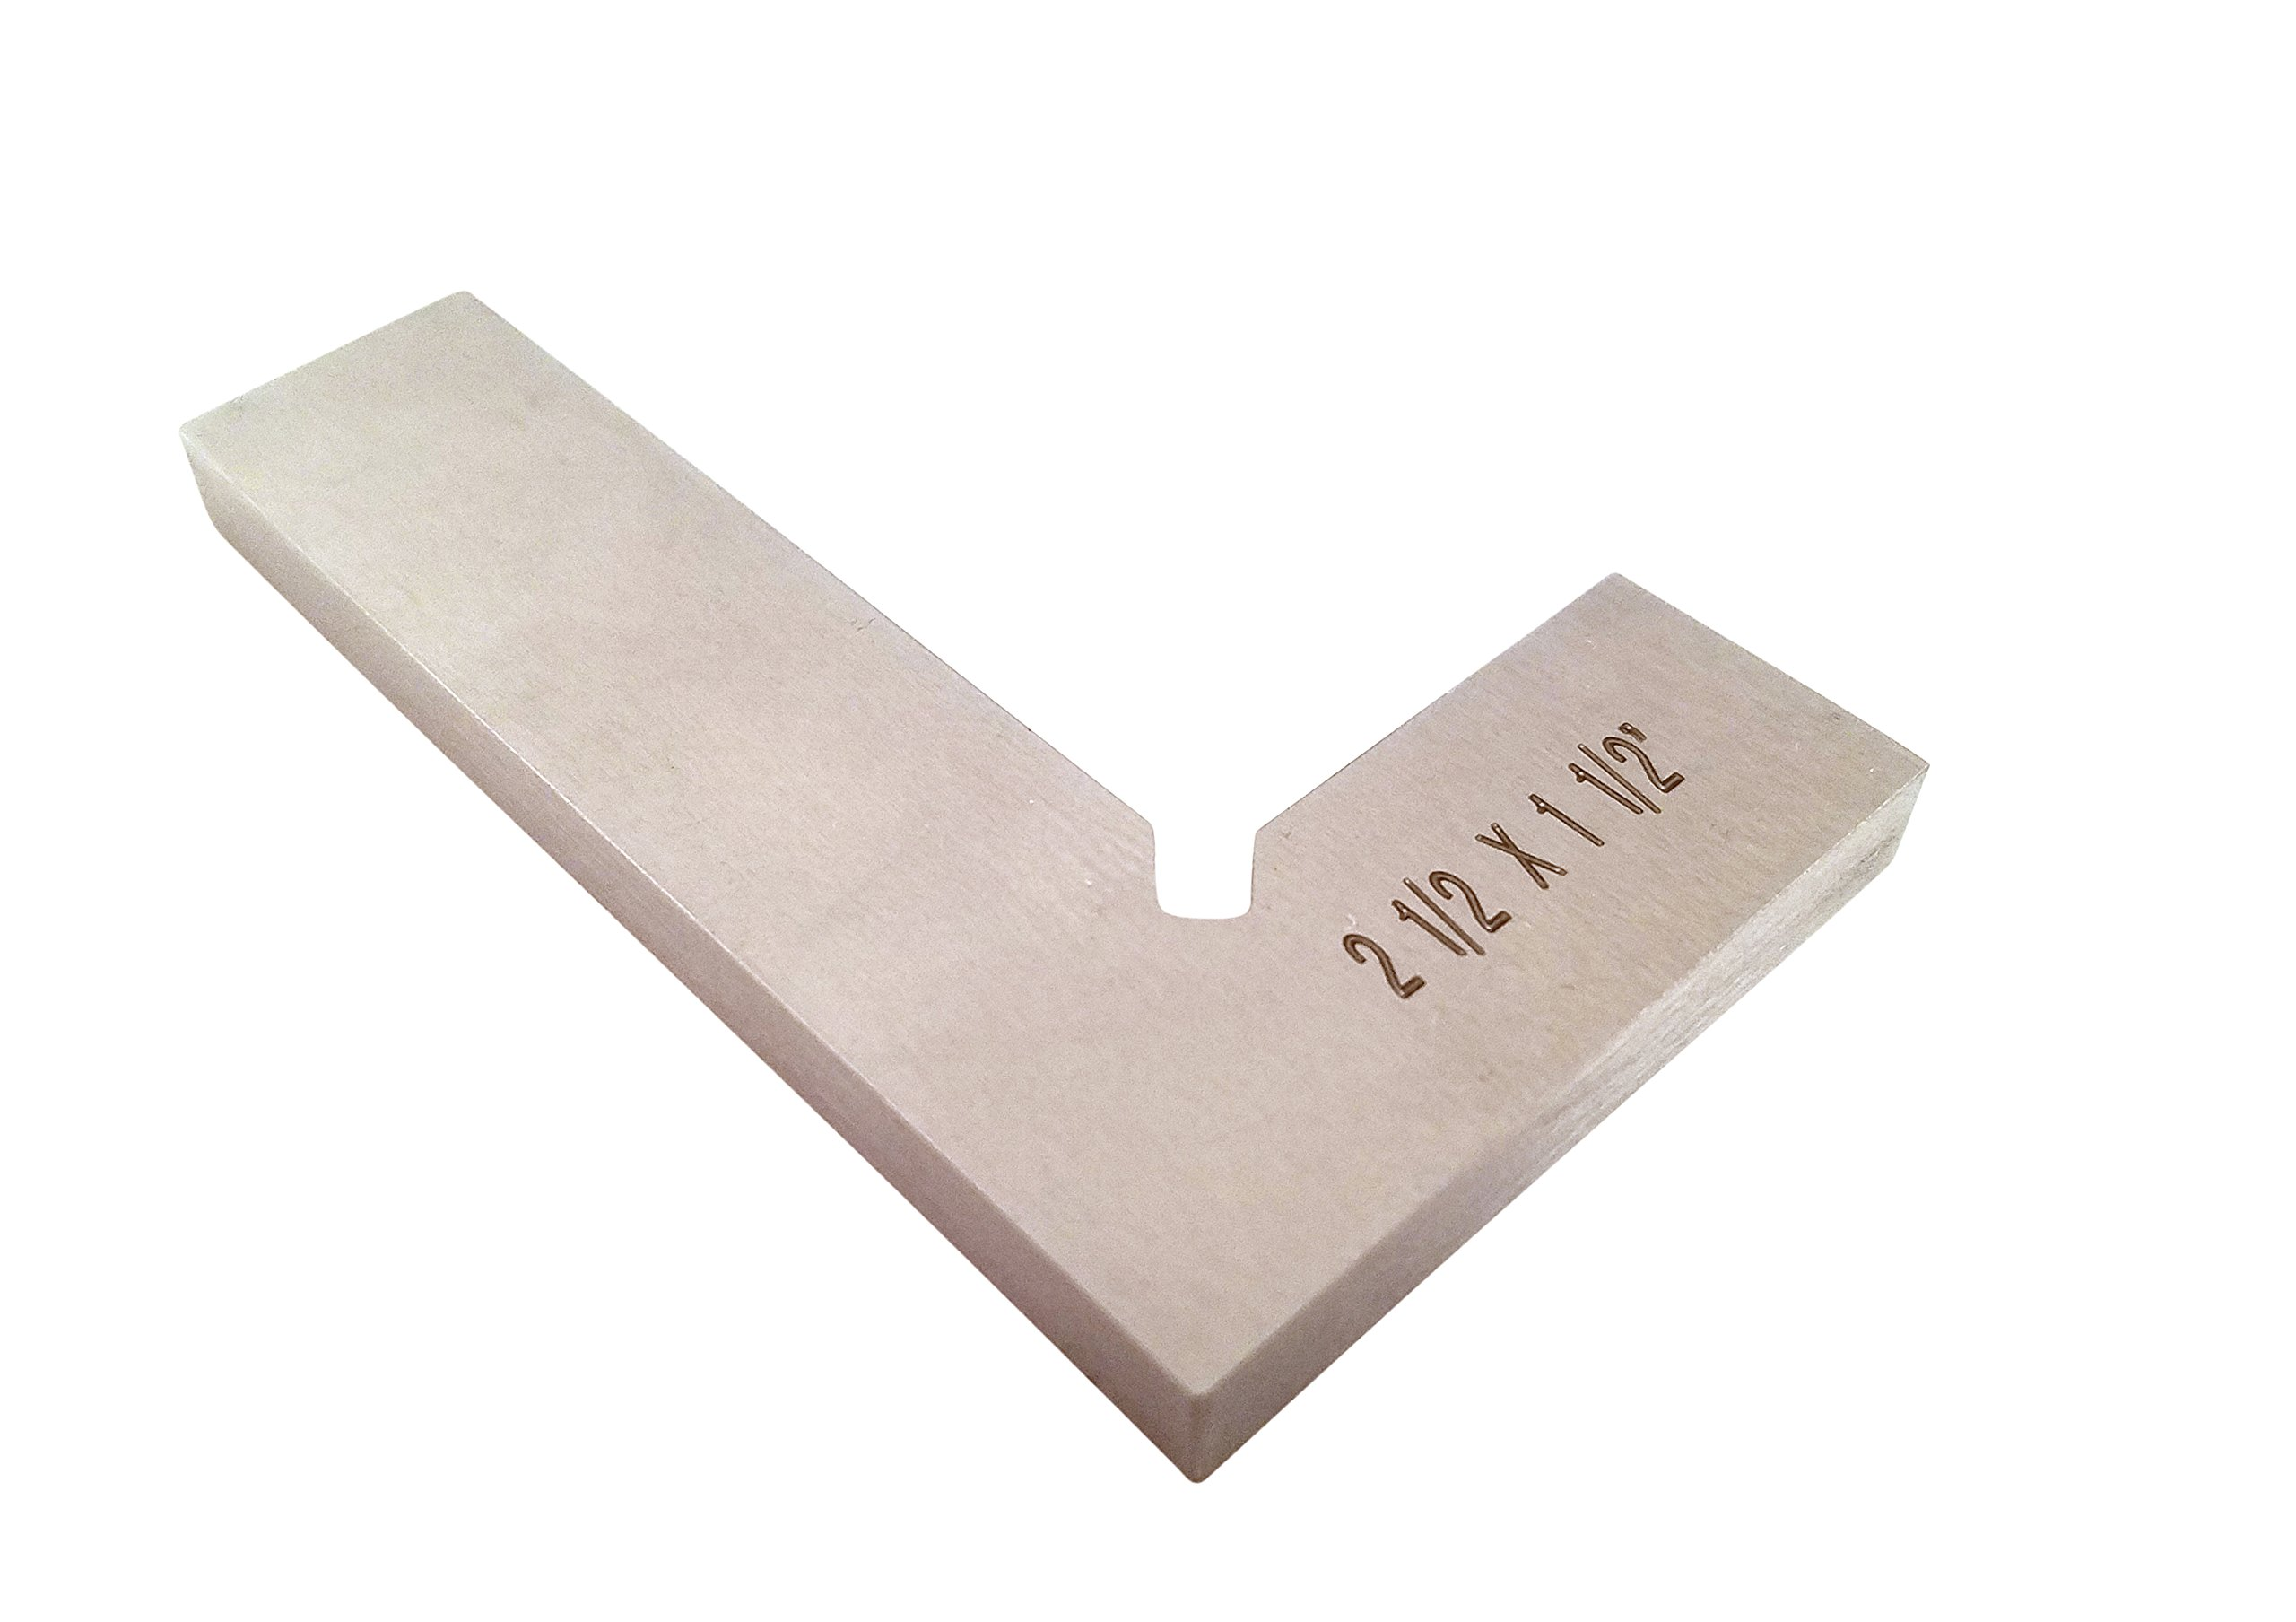 """Machinist Engineer Solid Mini Square 2 1/2"""" x 1 1/2"""" x .220"""" Thick DIN 875/0 (Square w/in - 0.0003"""") Stainless TTWSS2"""